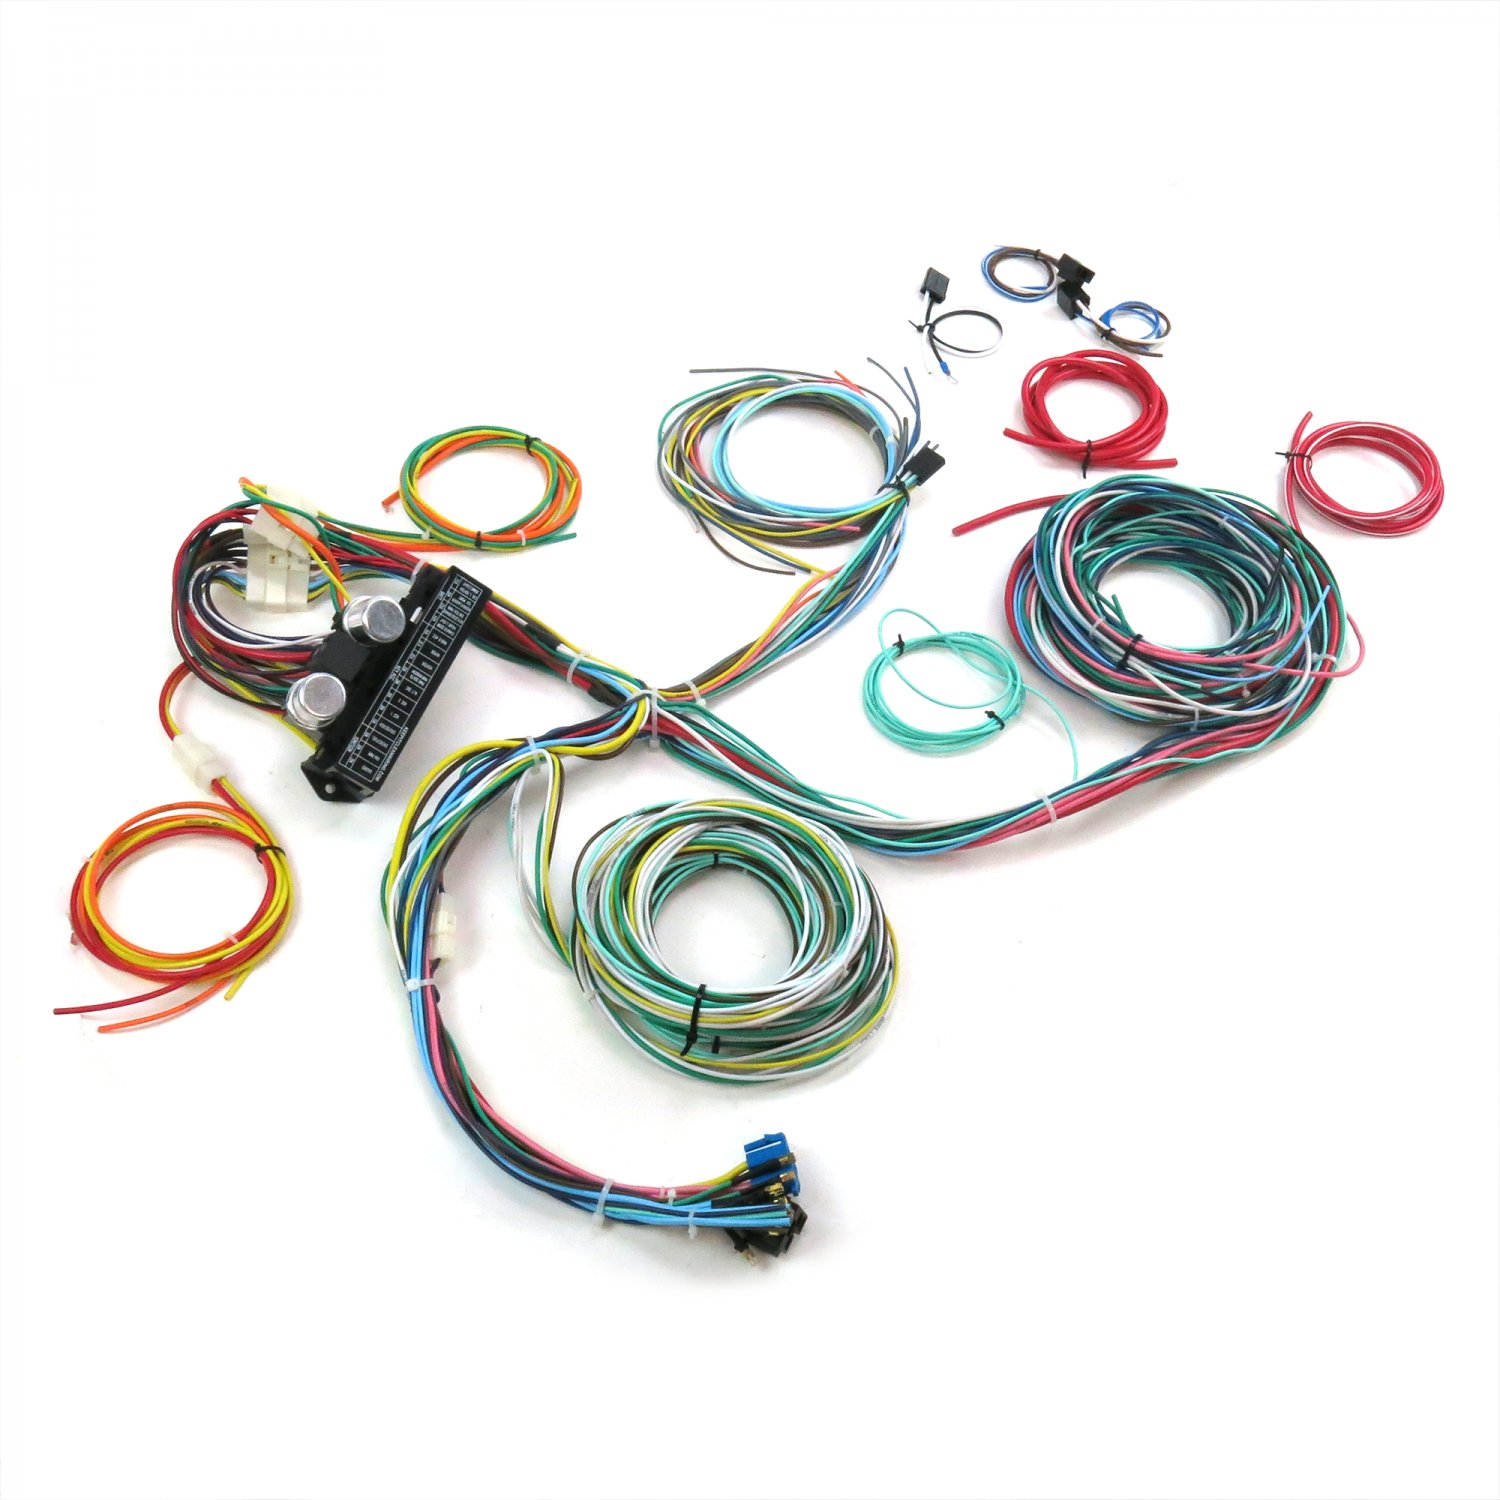 hight resolution of auto wire harness re wiring kit for any 67 72 chevy truck 12v american standard